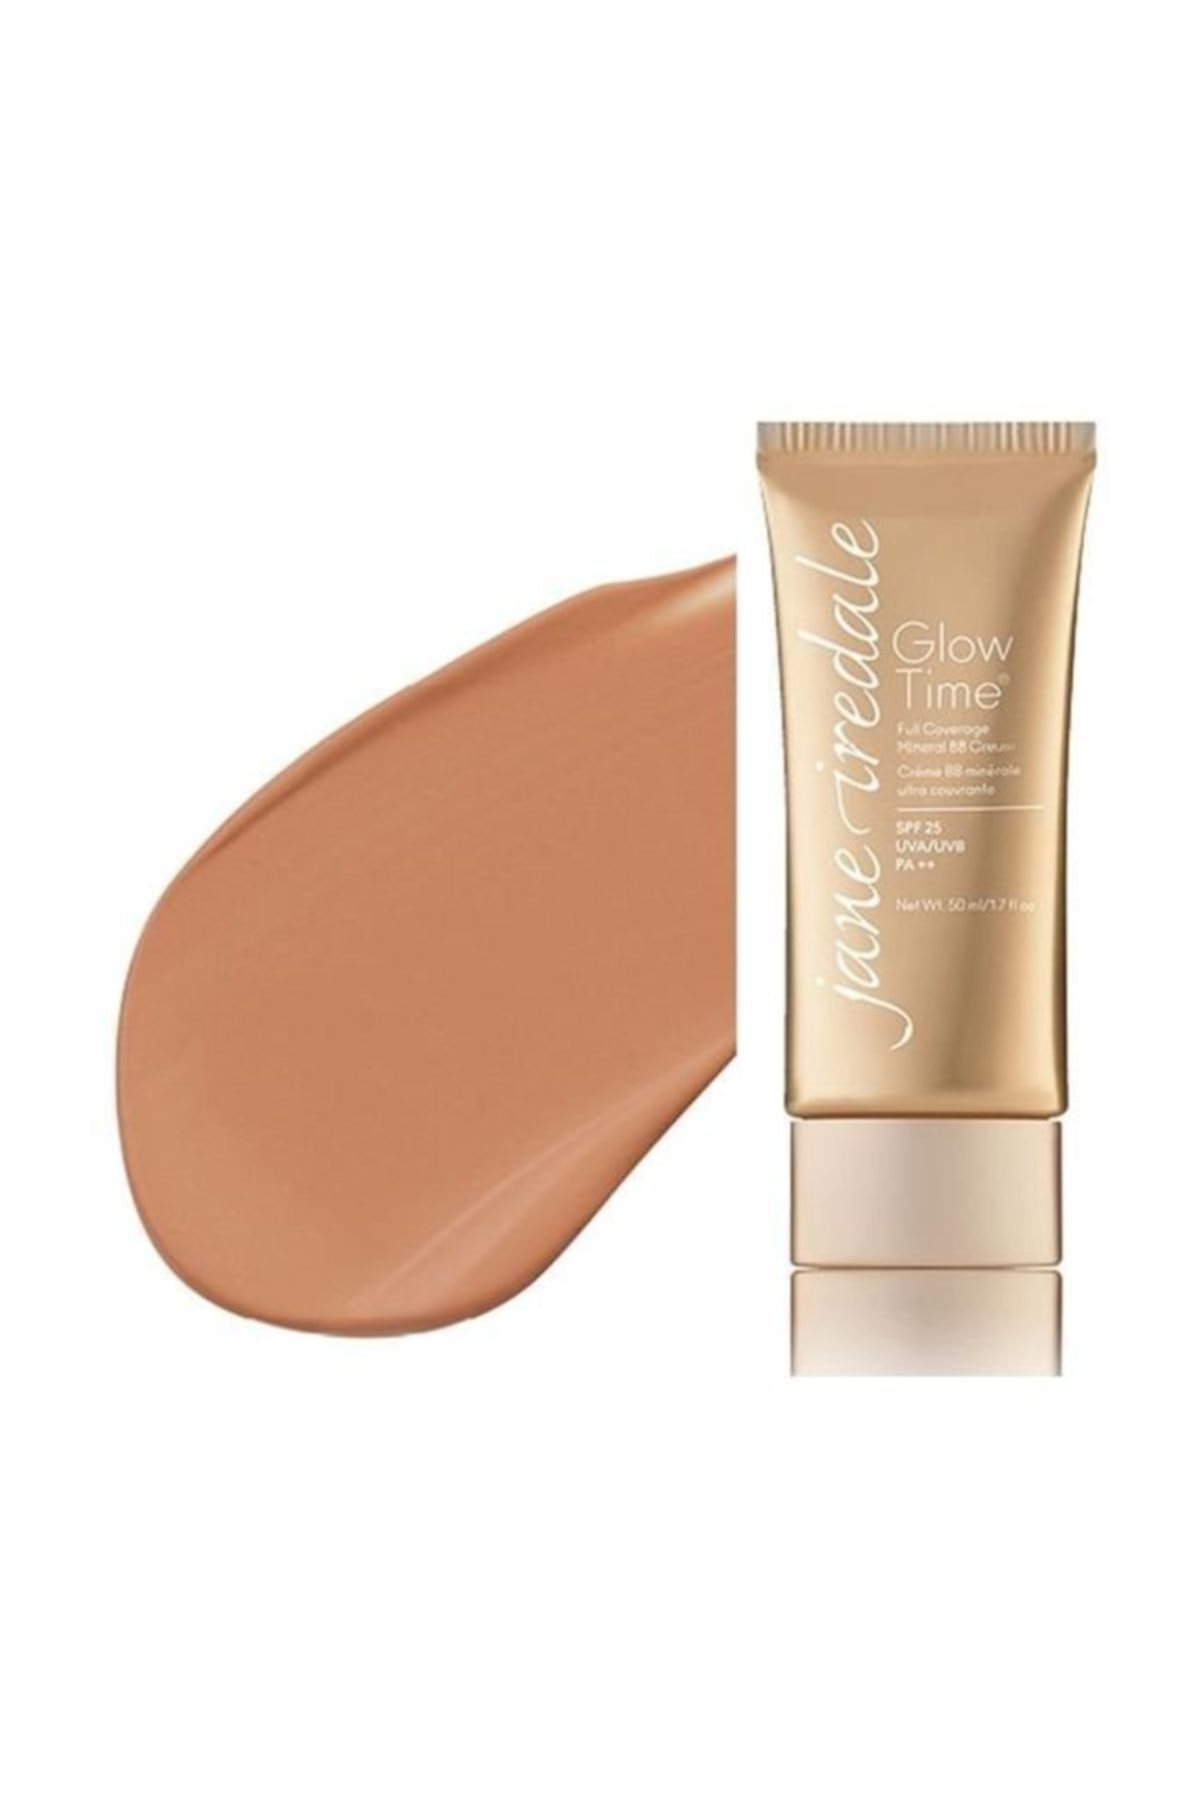 Jane Iredale Mineral BB Kapatıcı - Glow Time Full Covarage Mineral BB Cream Spf 25 BB8 50 ml 670959113313 1